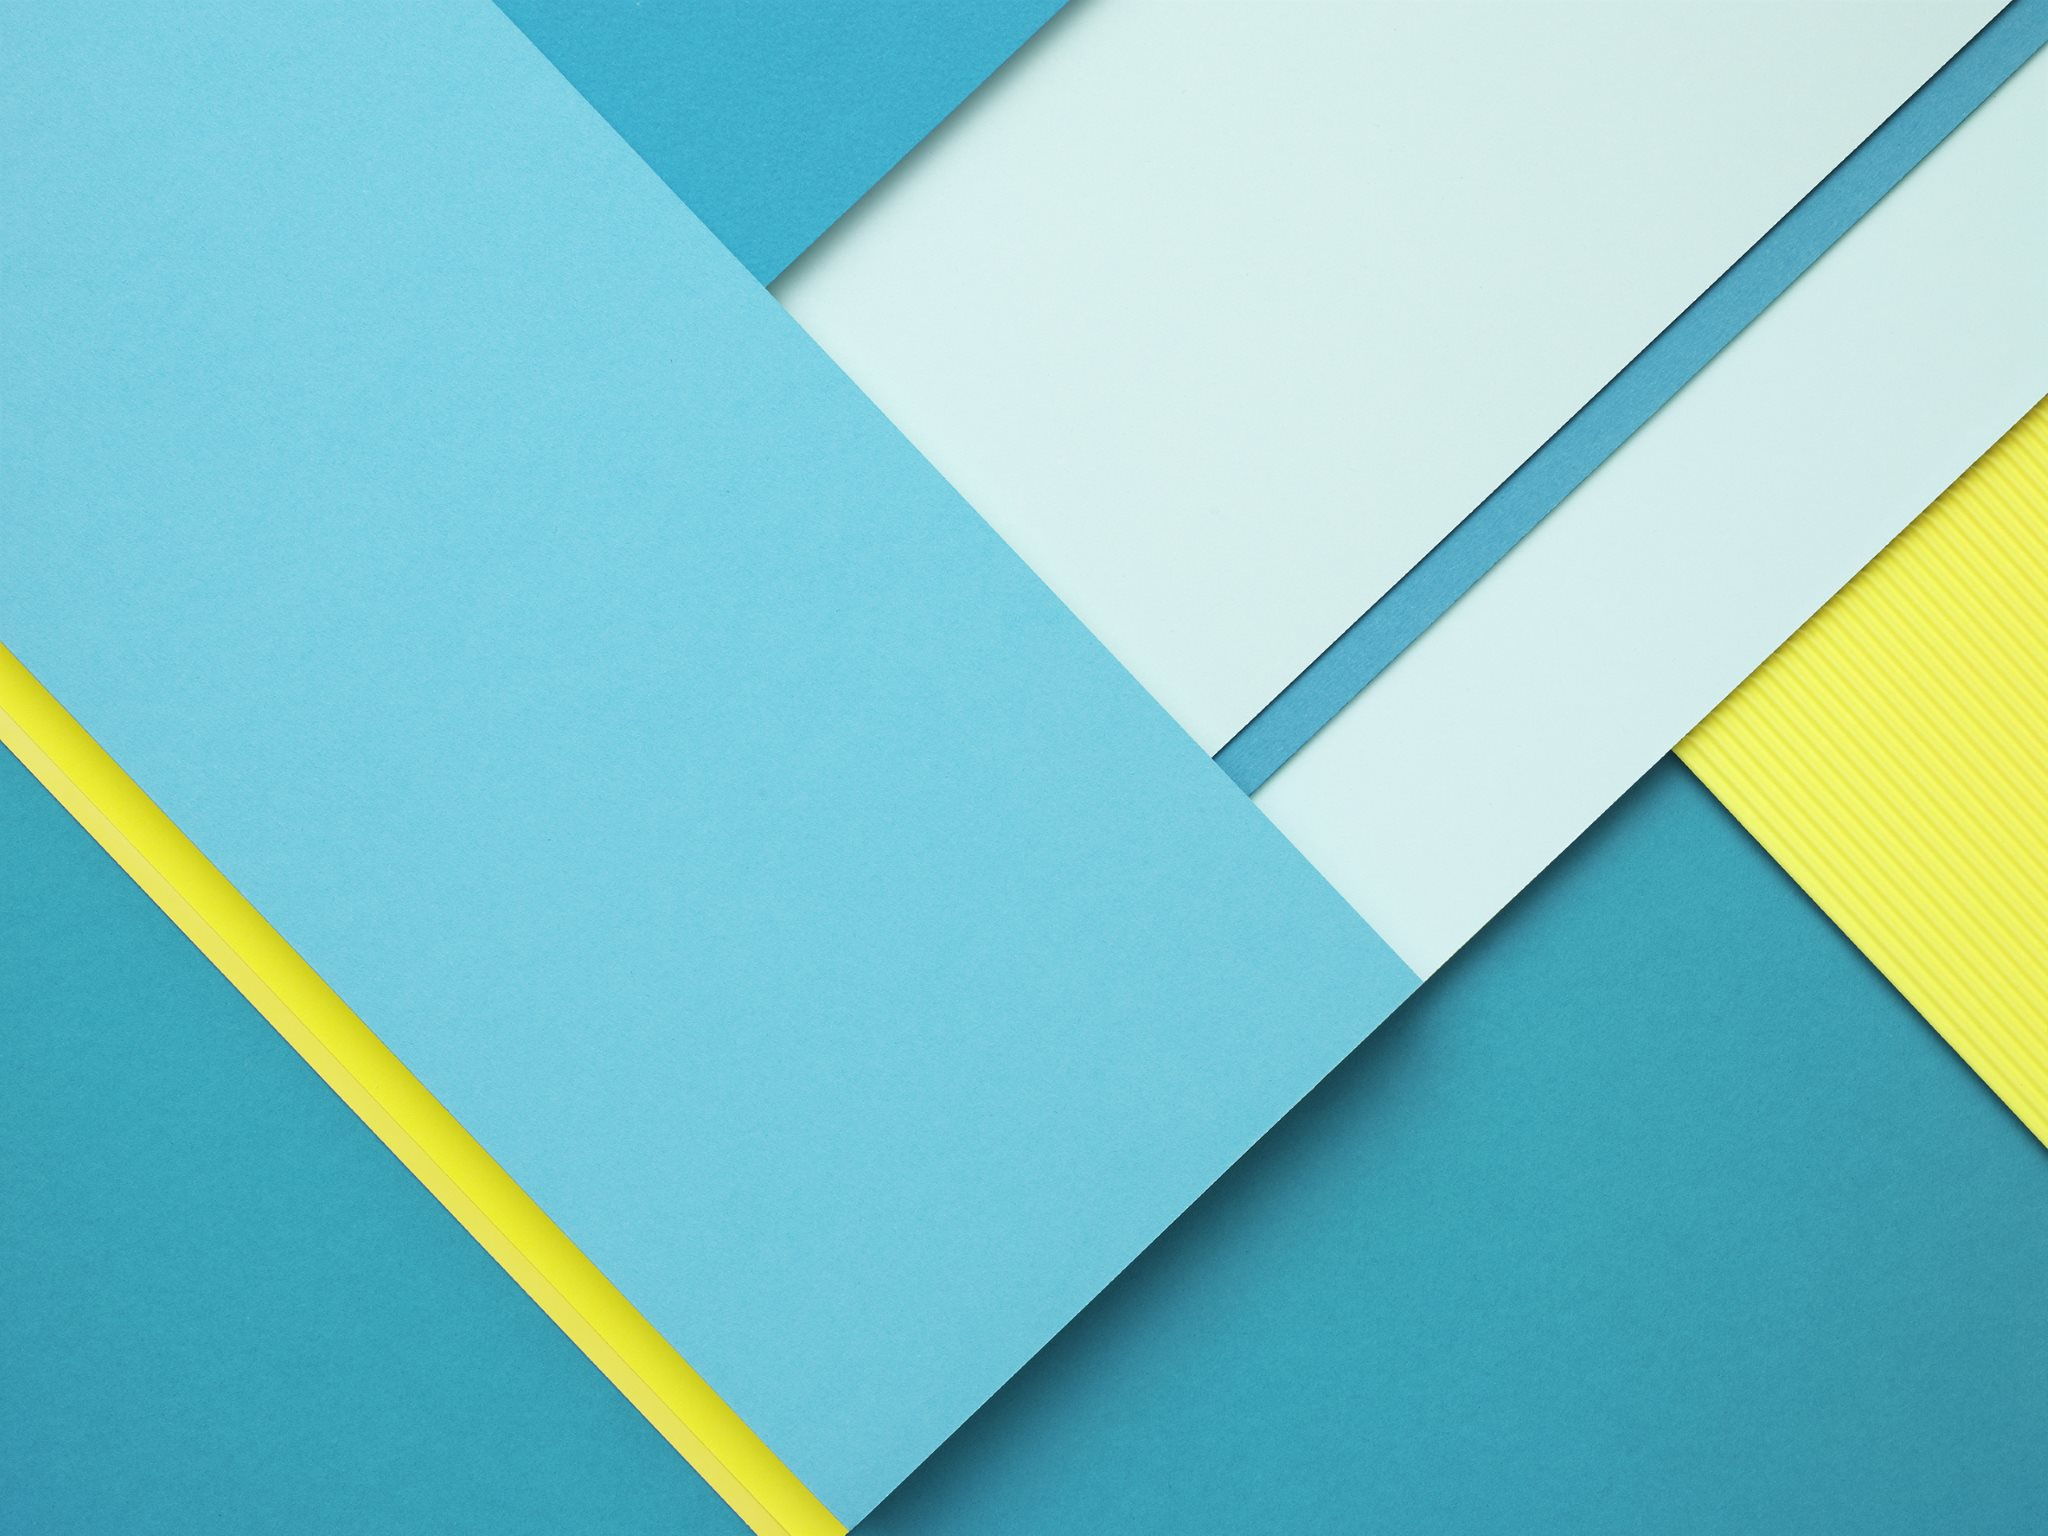 Material design wallpaper 4k wallpaper sportstle for Material design wallpaper 4k